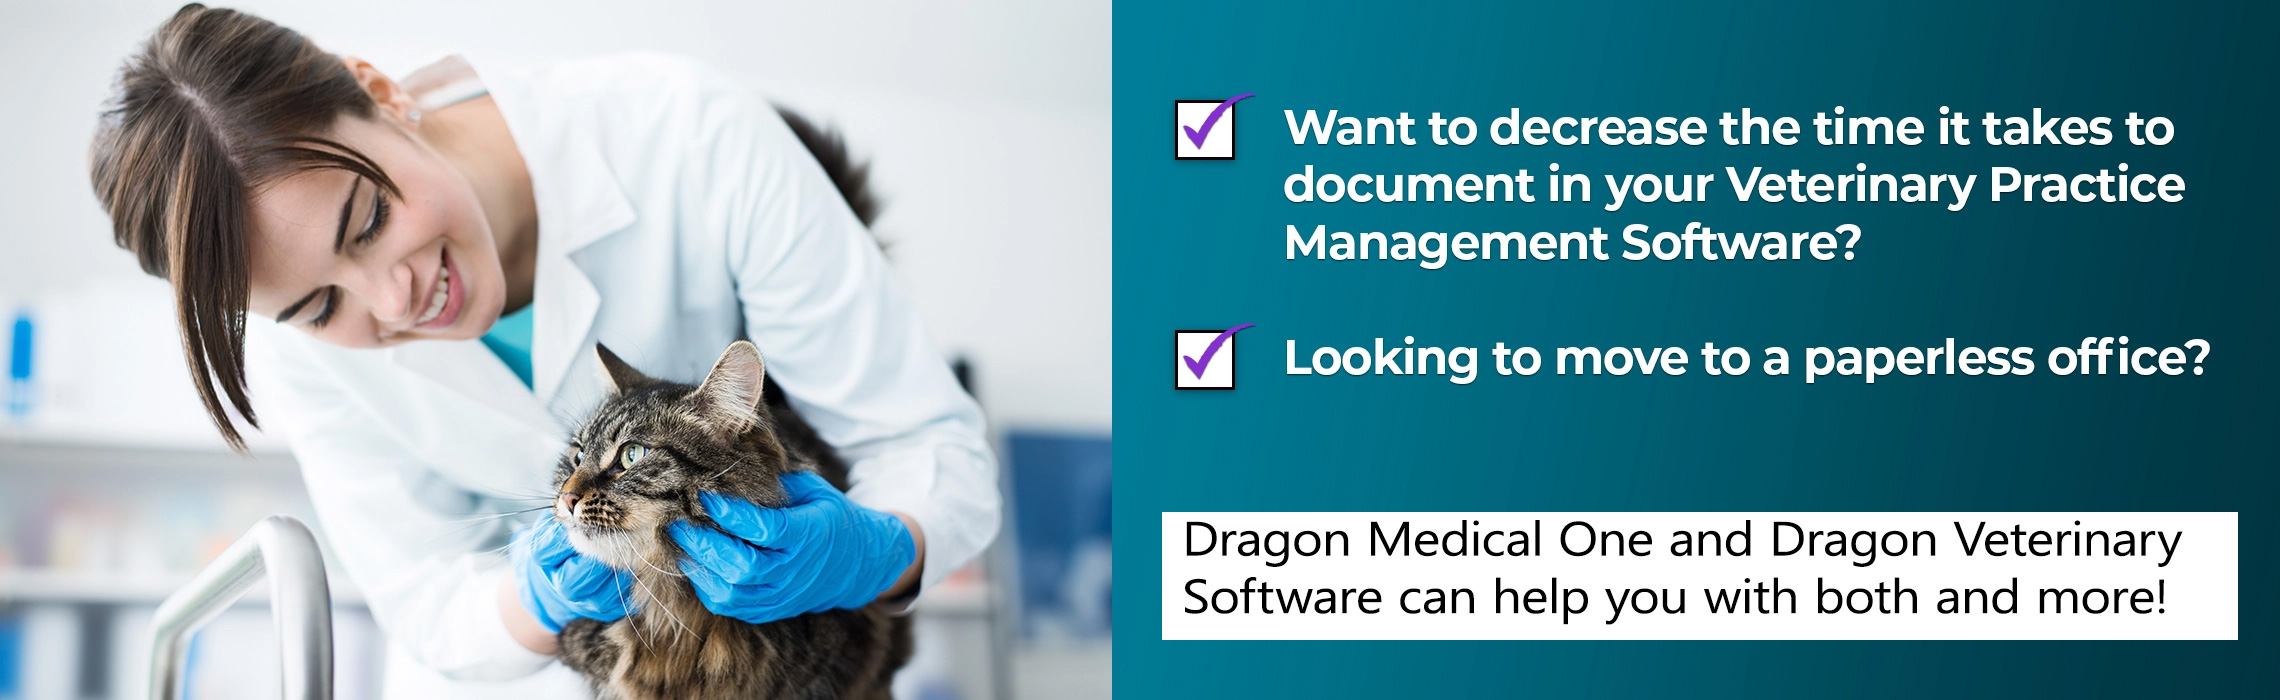 Dragon Medical Practice Edition 2 and Dragon Veterinary Software can help with both and more!